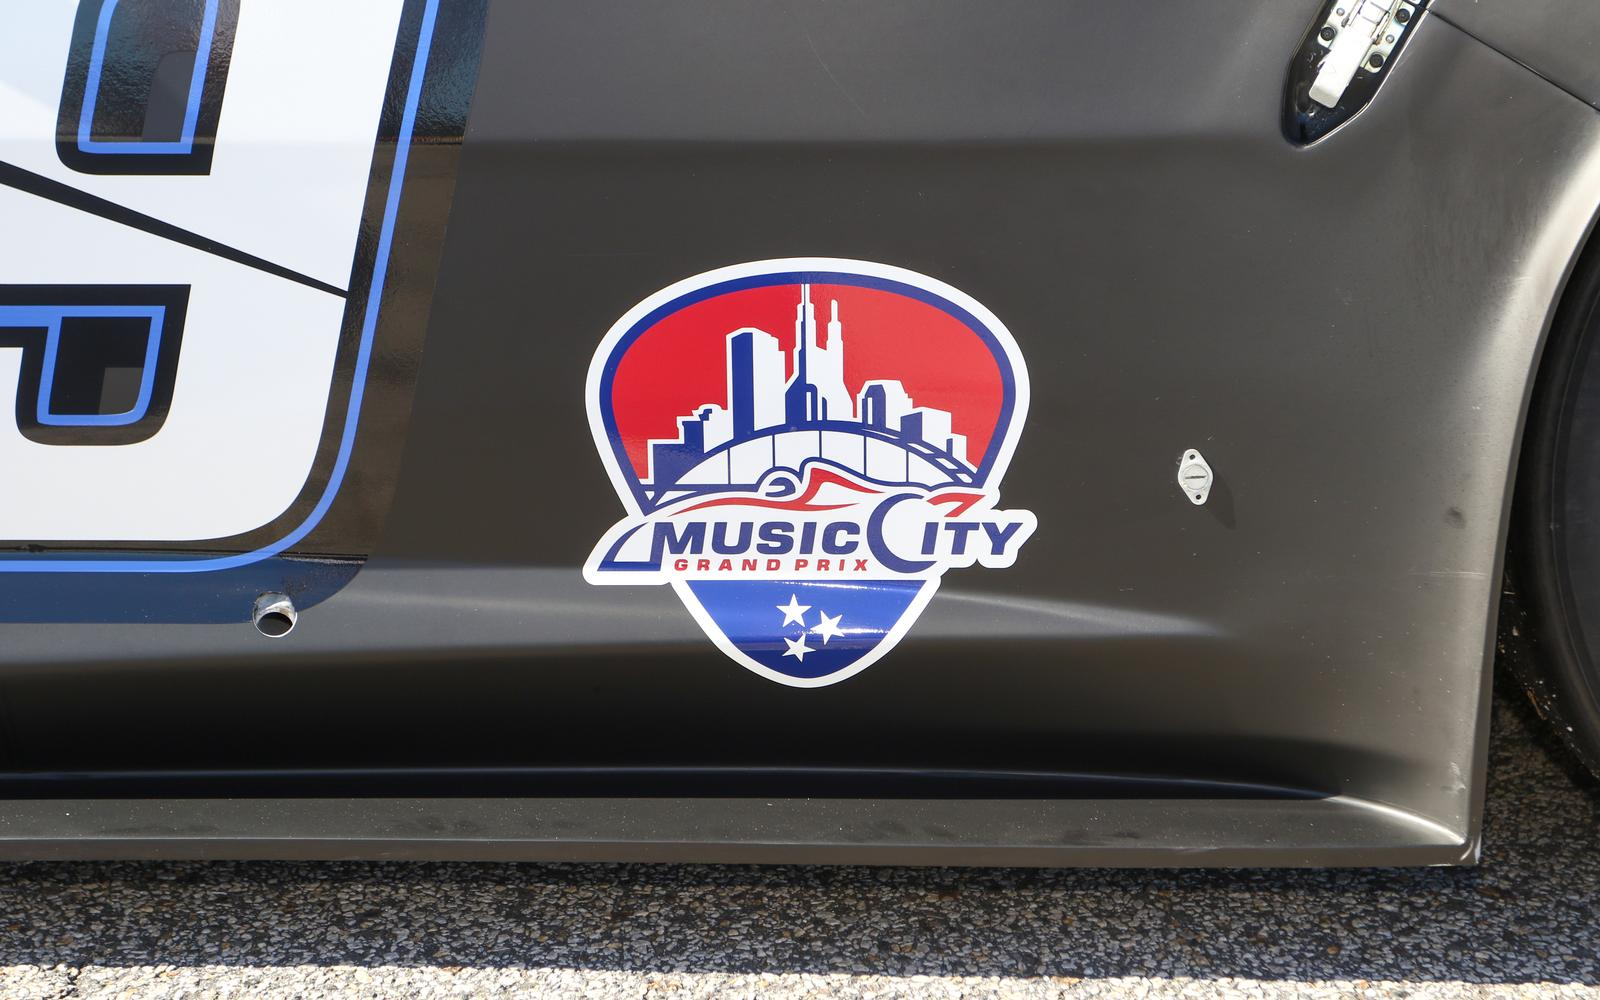 TRANS AM SERIES RACES INTO NASHVILLE FOR THE MUSIC CITY GRAND PRIX